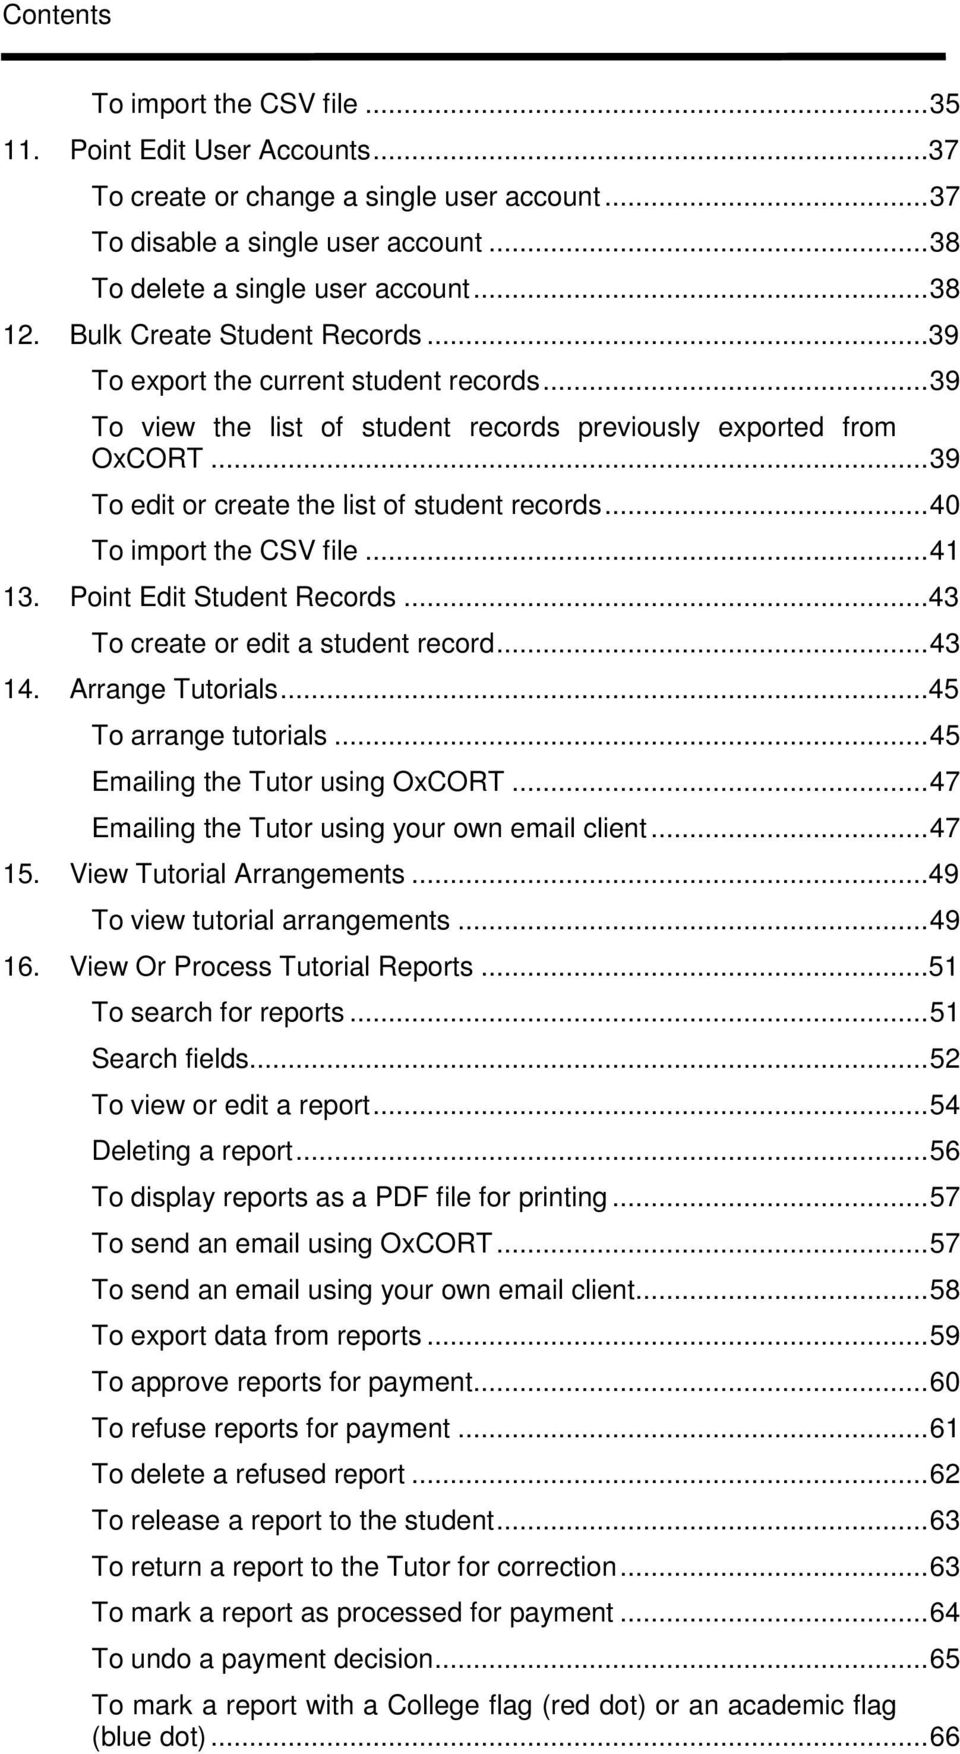 .. 40 To import the CSV file... 41 13. Point Edit Student Records... 43 To create or edit a student record... 43 14. Arrange Tutorials... 45 To arrange tutorials... 45 Emailing the Tutor using OxCORT.